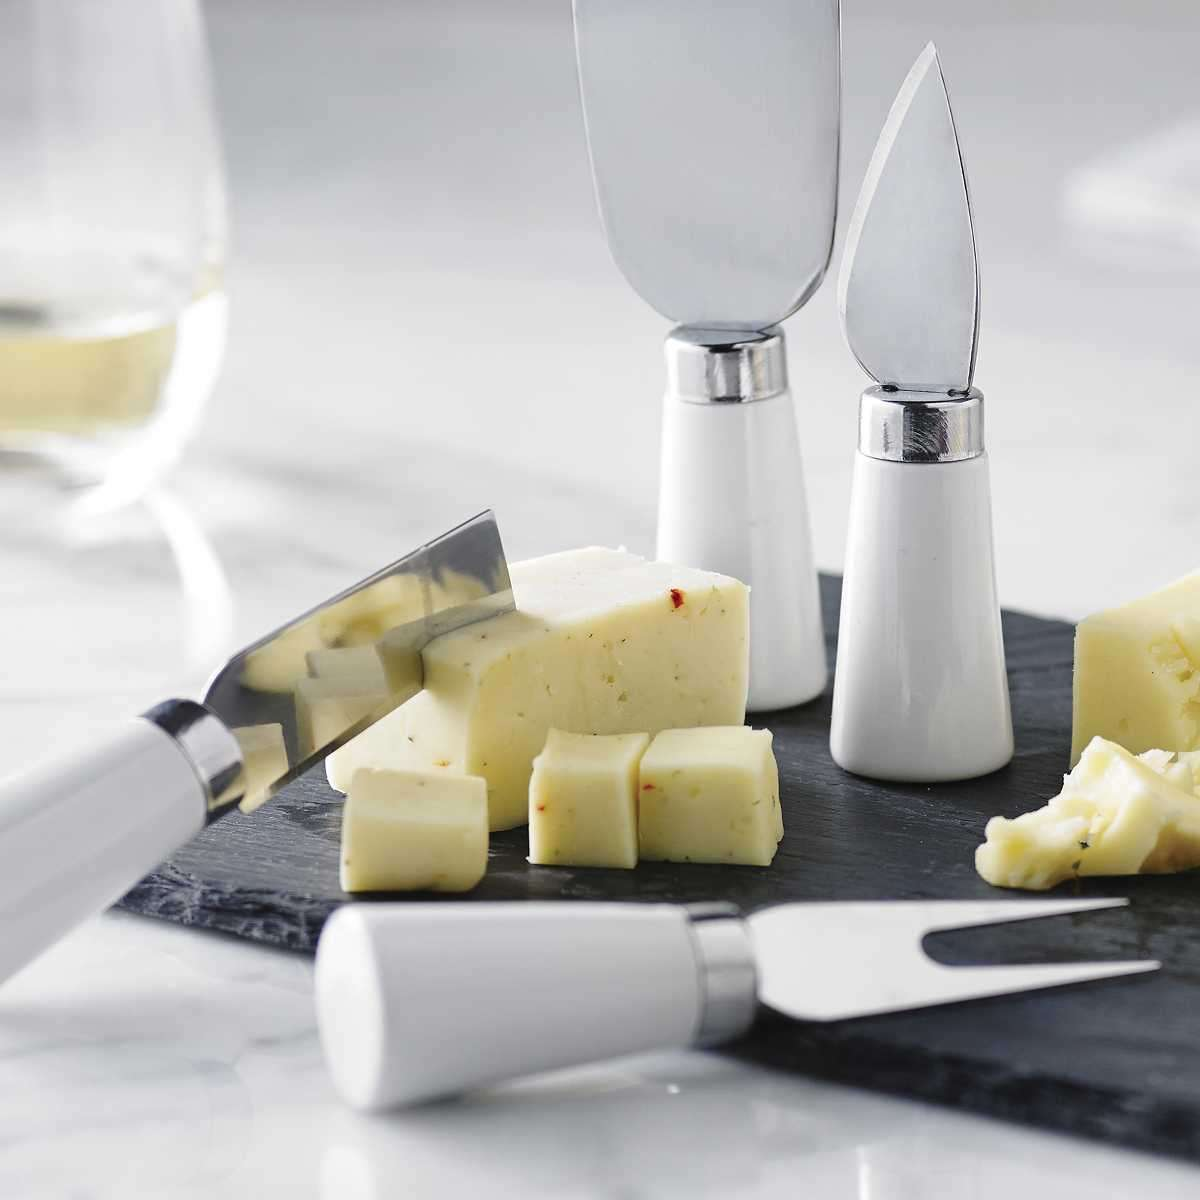 Cheese Platters and Knives